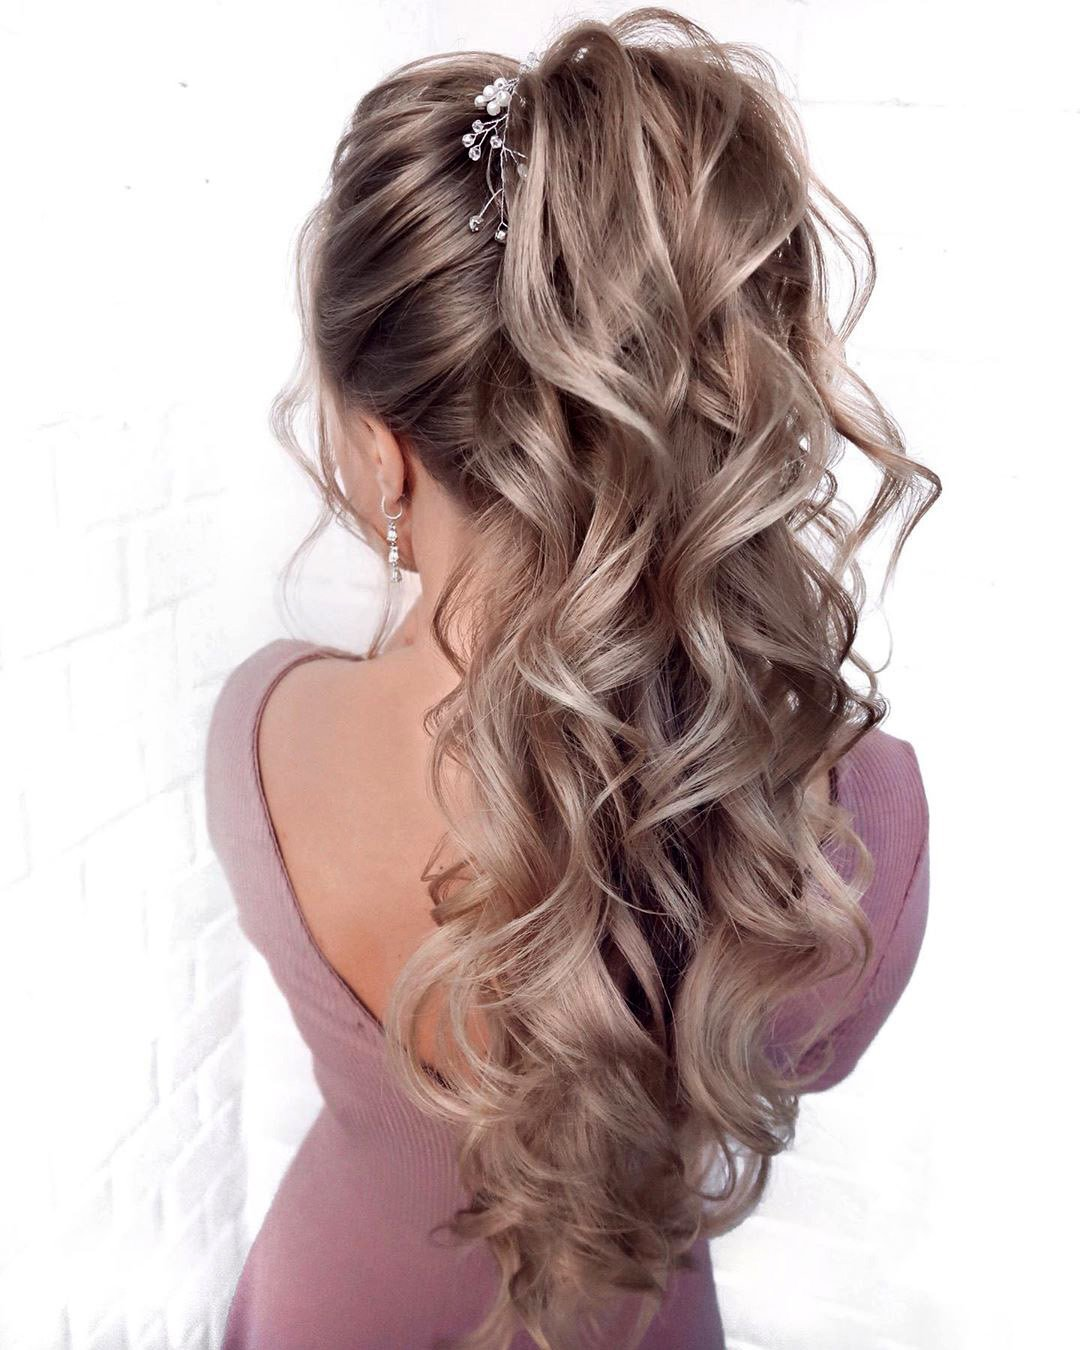 pony tail hairstyles extremely high curly on long hair mpobedinskaya